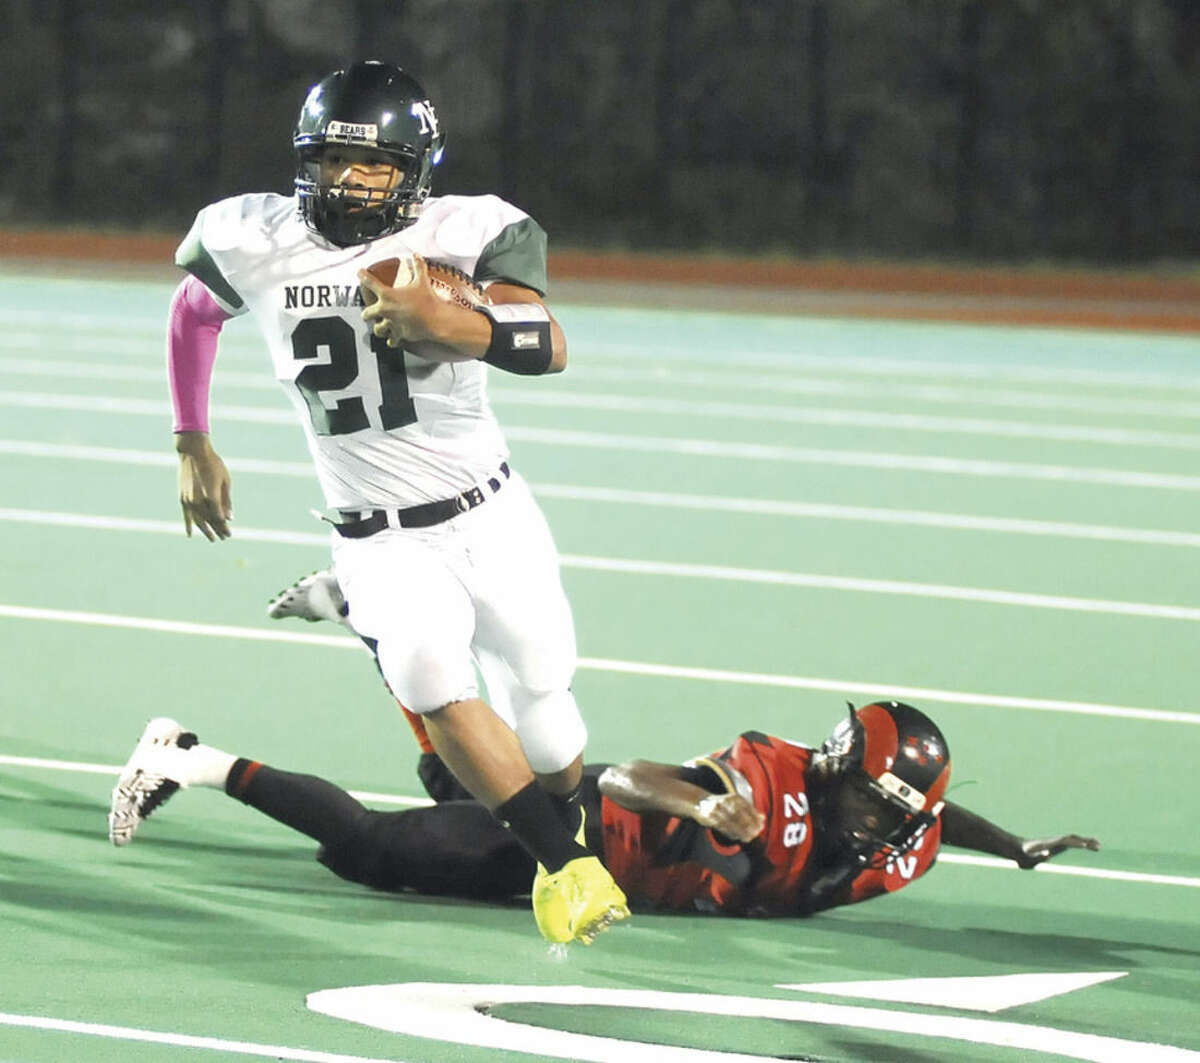 Hour photo/John Nash Norwalk running back Eric Cohens (21) scampers for a big gain during Friday's FCIAC football game at Bridgeport Central. Cohens had 243 all-purpose yards, helping Norwalk post a 36-20 win.